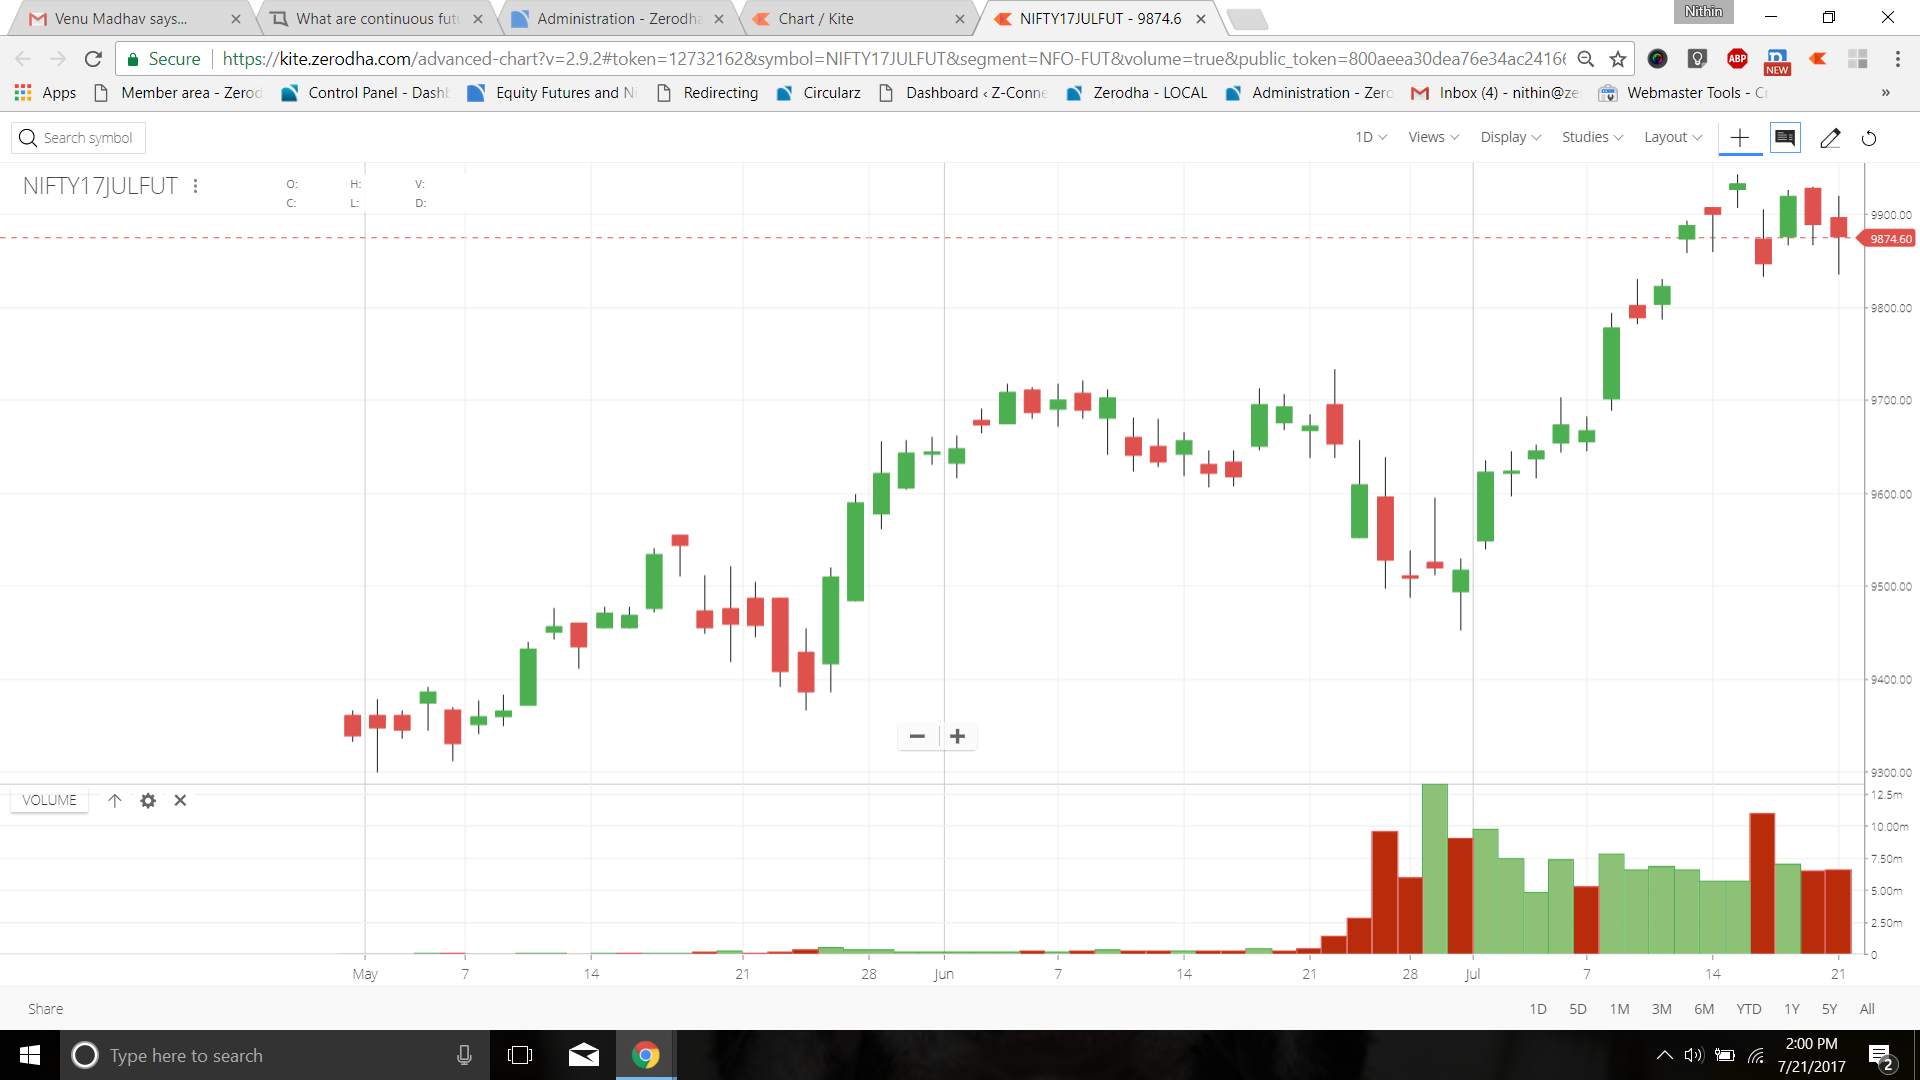 What are continuous futures charts that I see on Kite